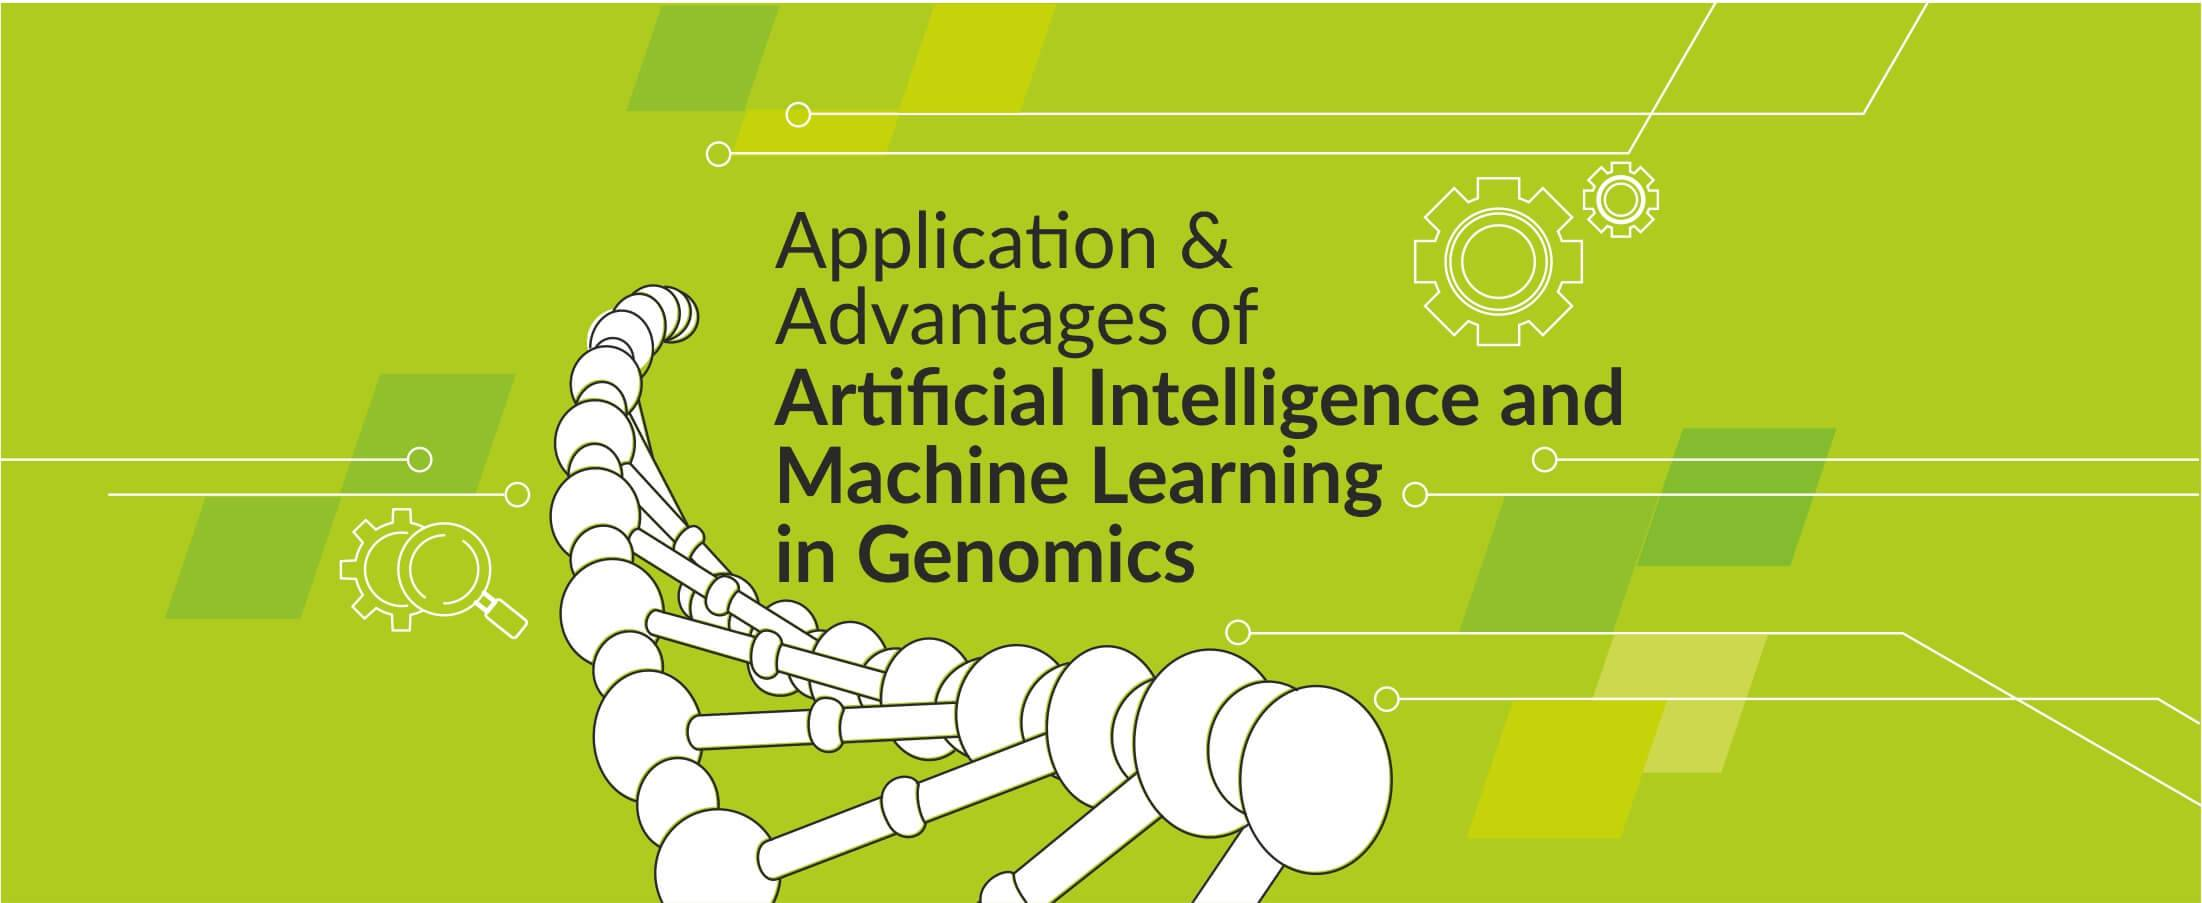 Application and Advantages of Artificial Intelligence and Machine Learning in Genomics